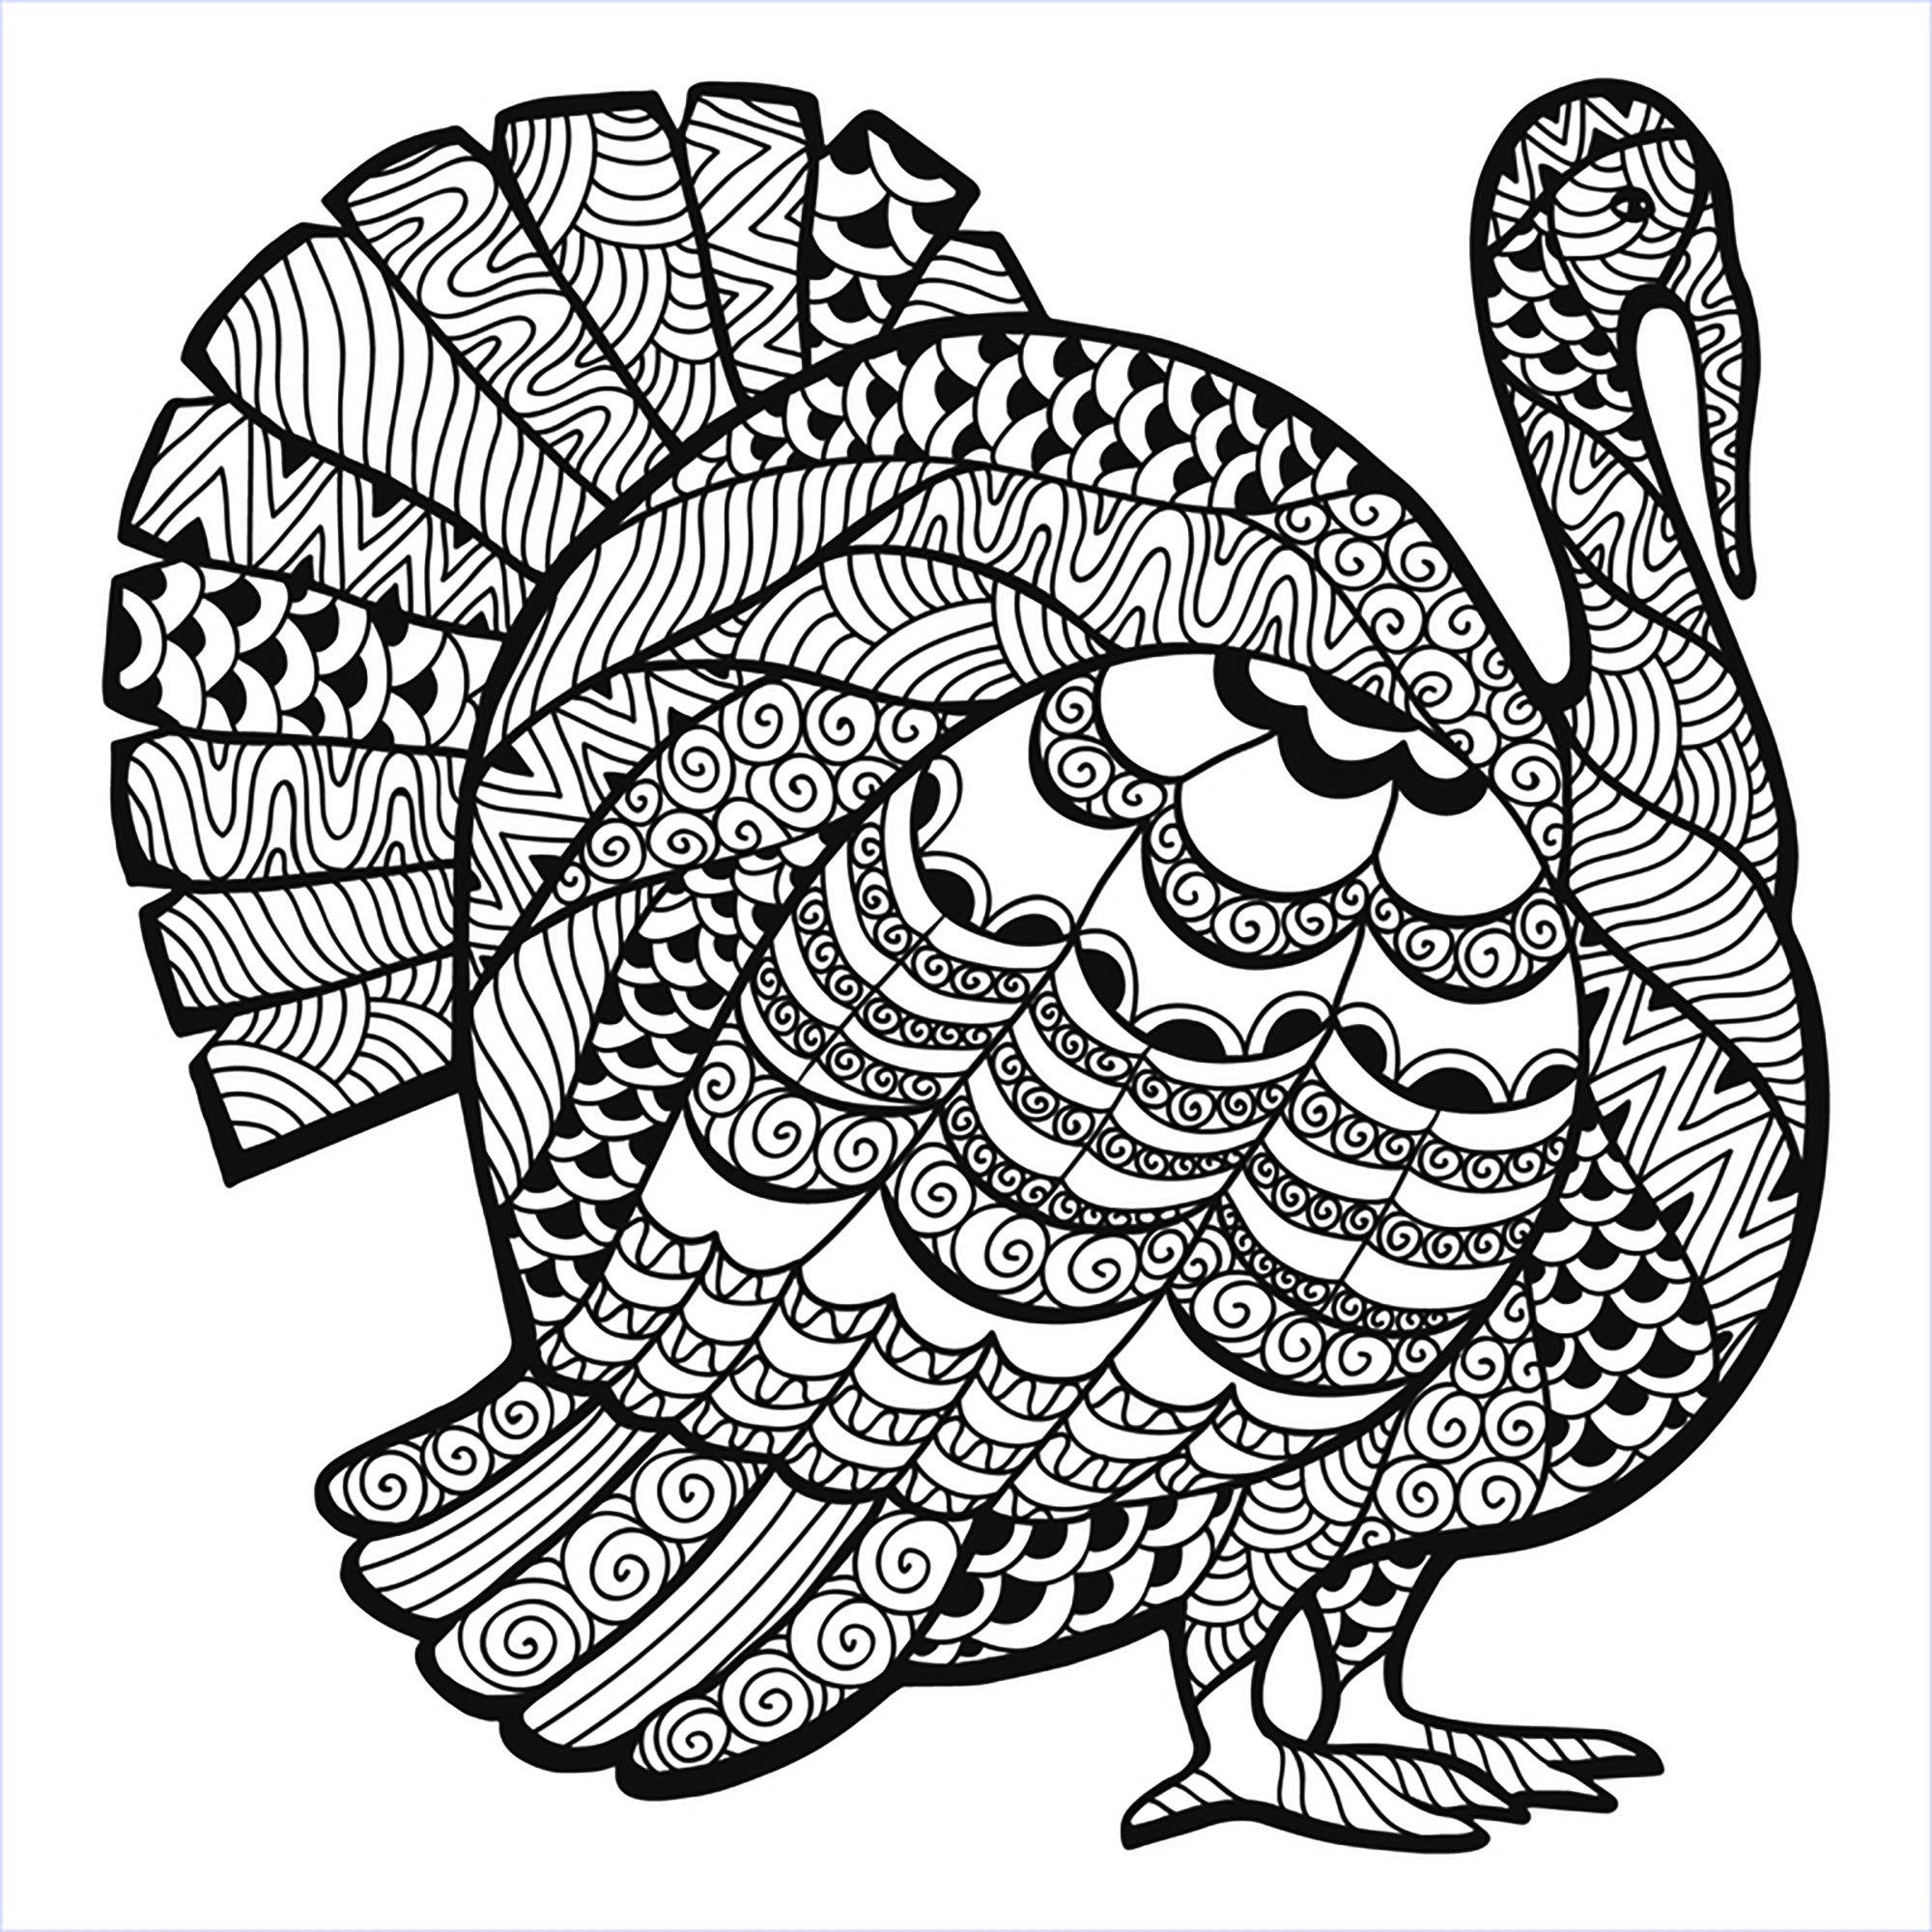 thanksgiving turkey zentangle coloring page from the gallery events thanksgiving artist lena - Zentangle Coloring Pages